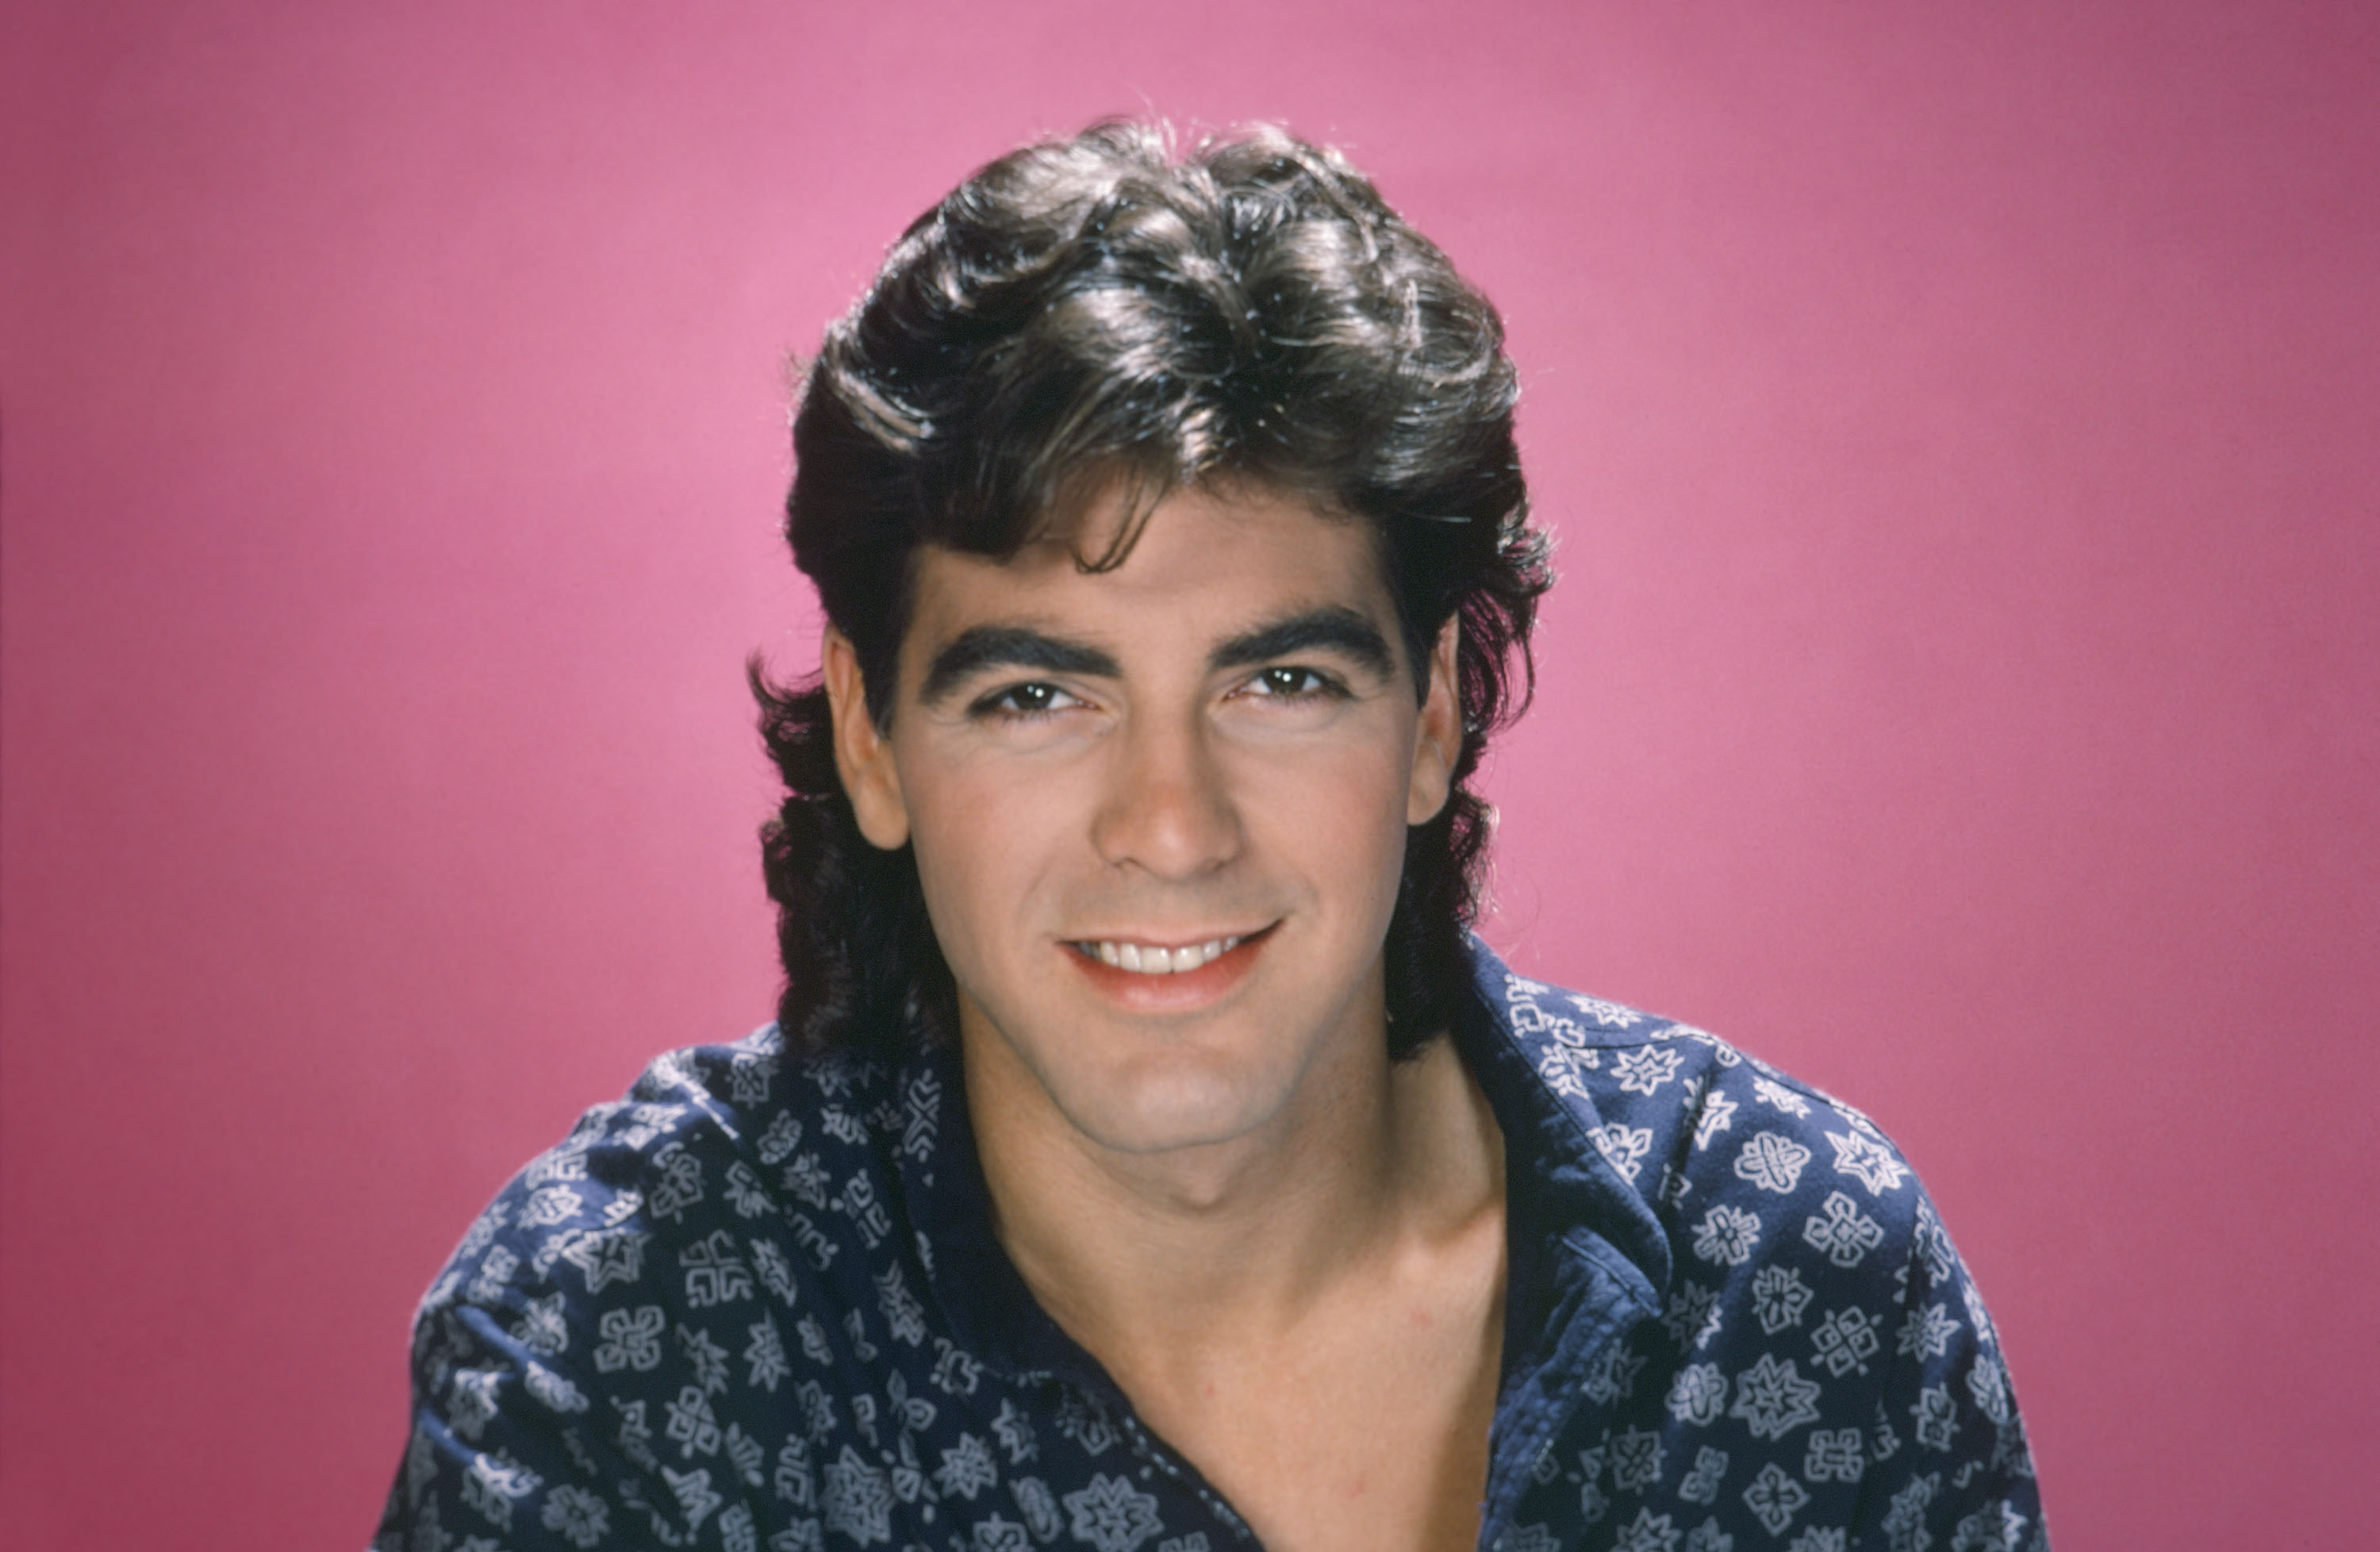 George Clooney, The Facts of Life